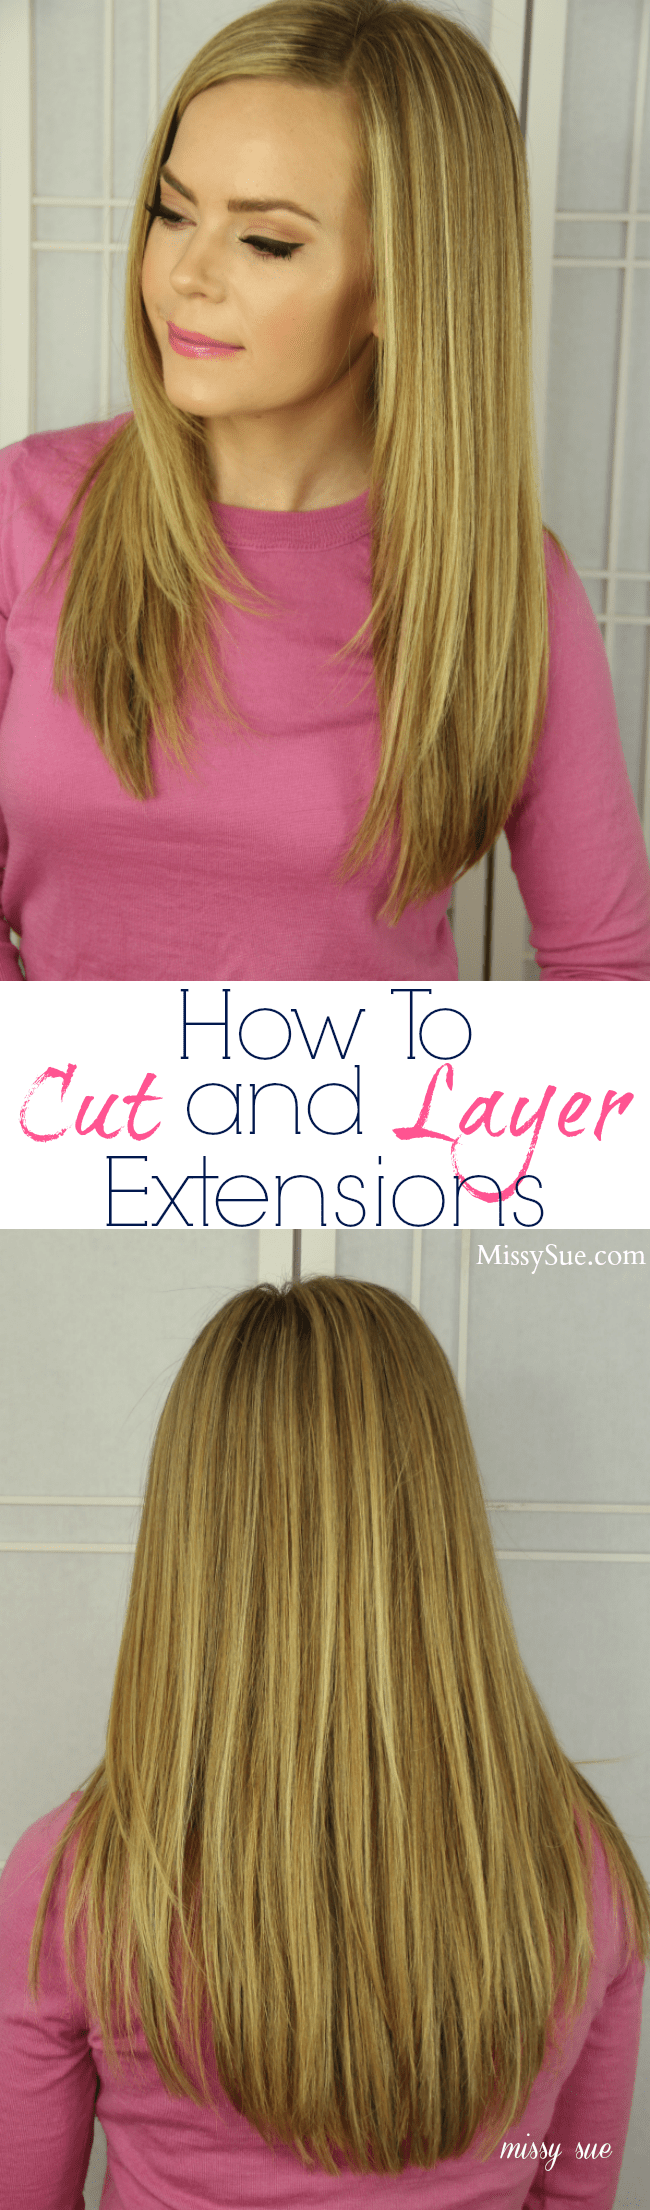 How to Cut and Layer Extensions